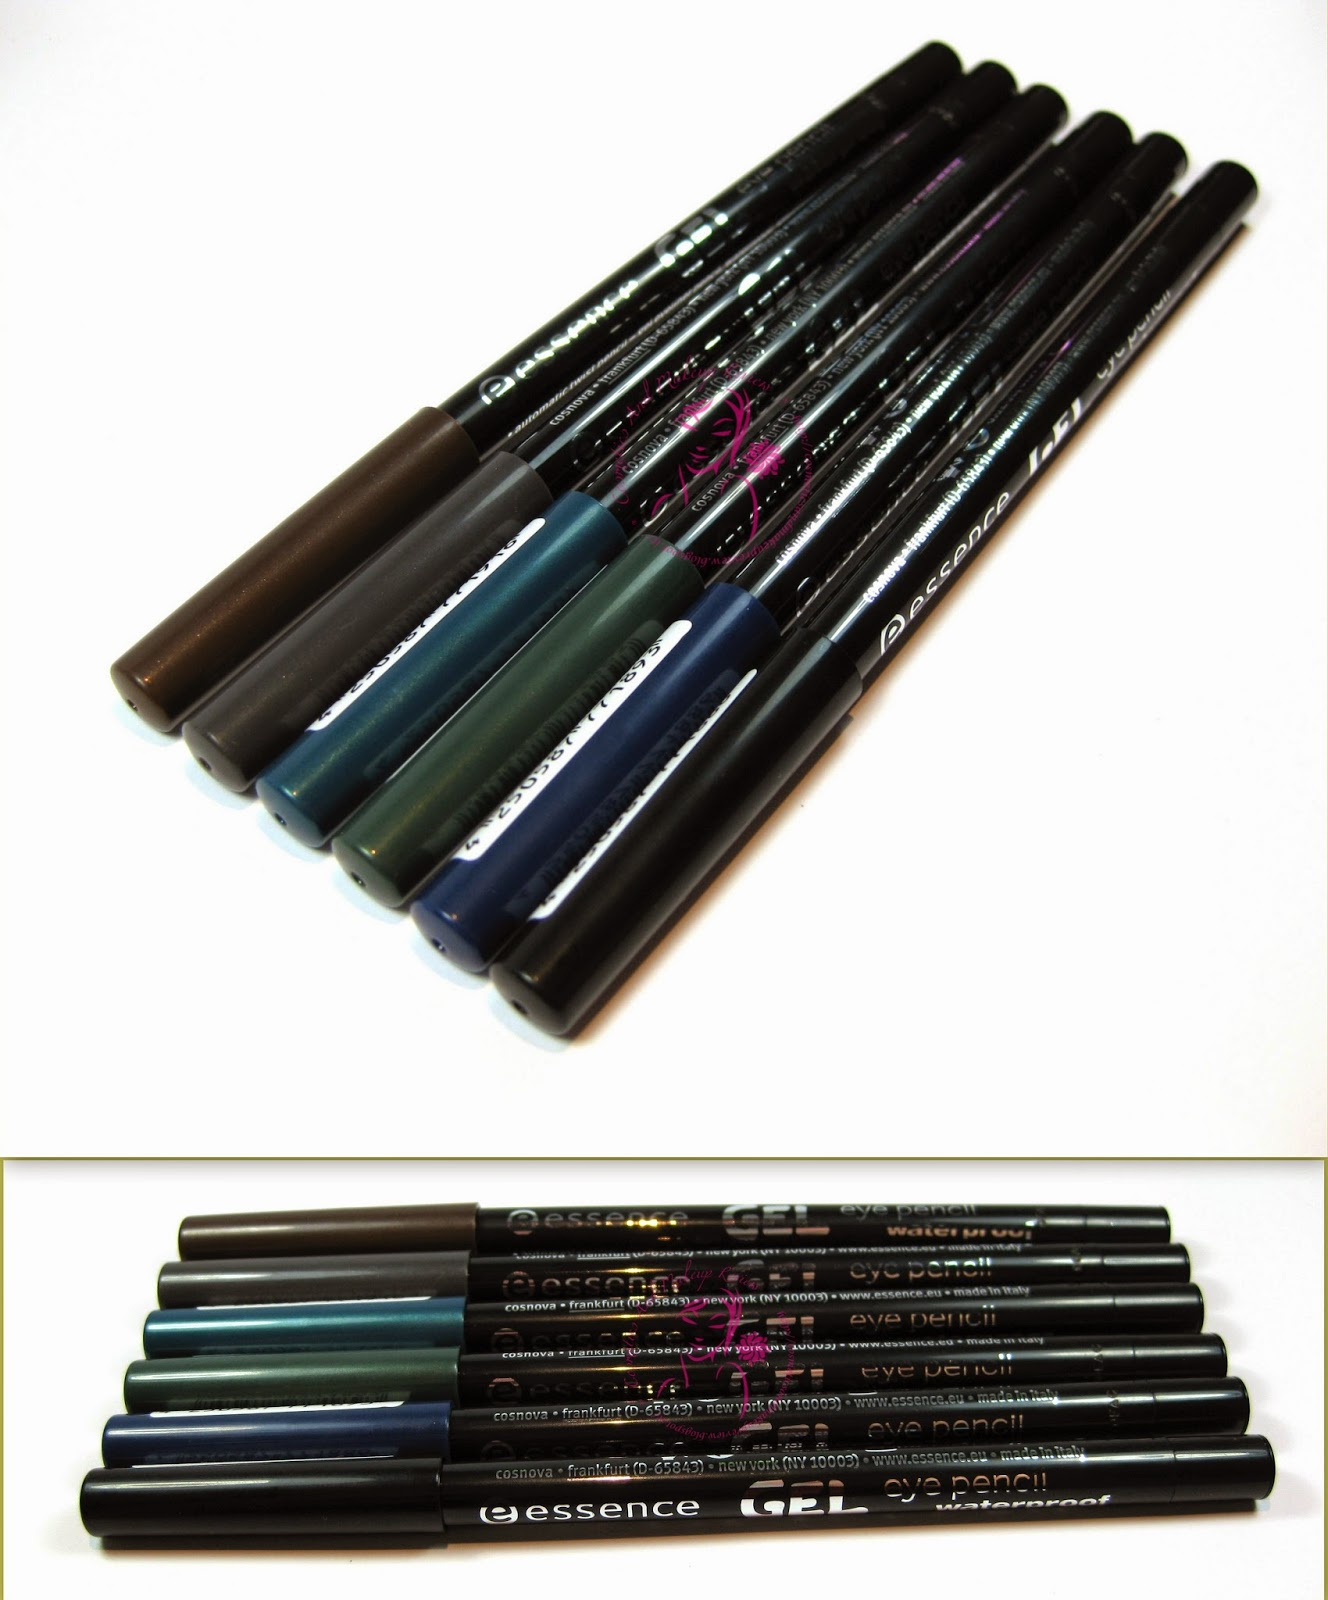 Essence - Gel Eye Pencil Waterproof - descrizione chiuse